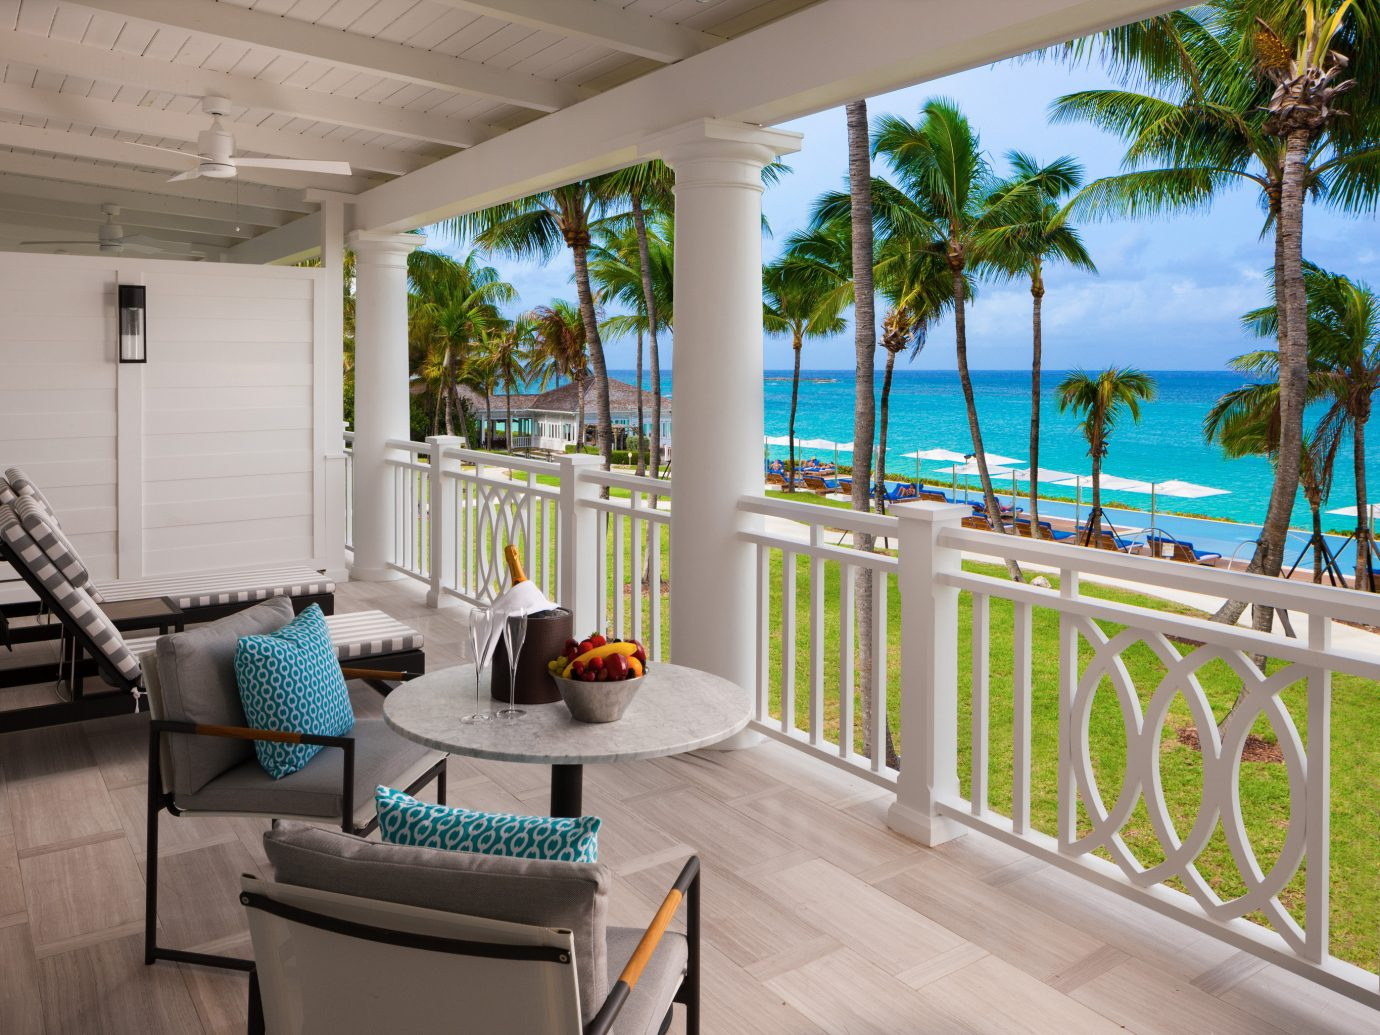 Balcony overlooking the ocean at Four Seasons Ocean Club Bahamas